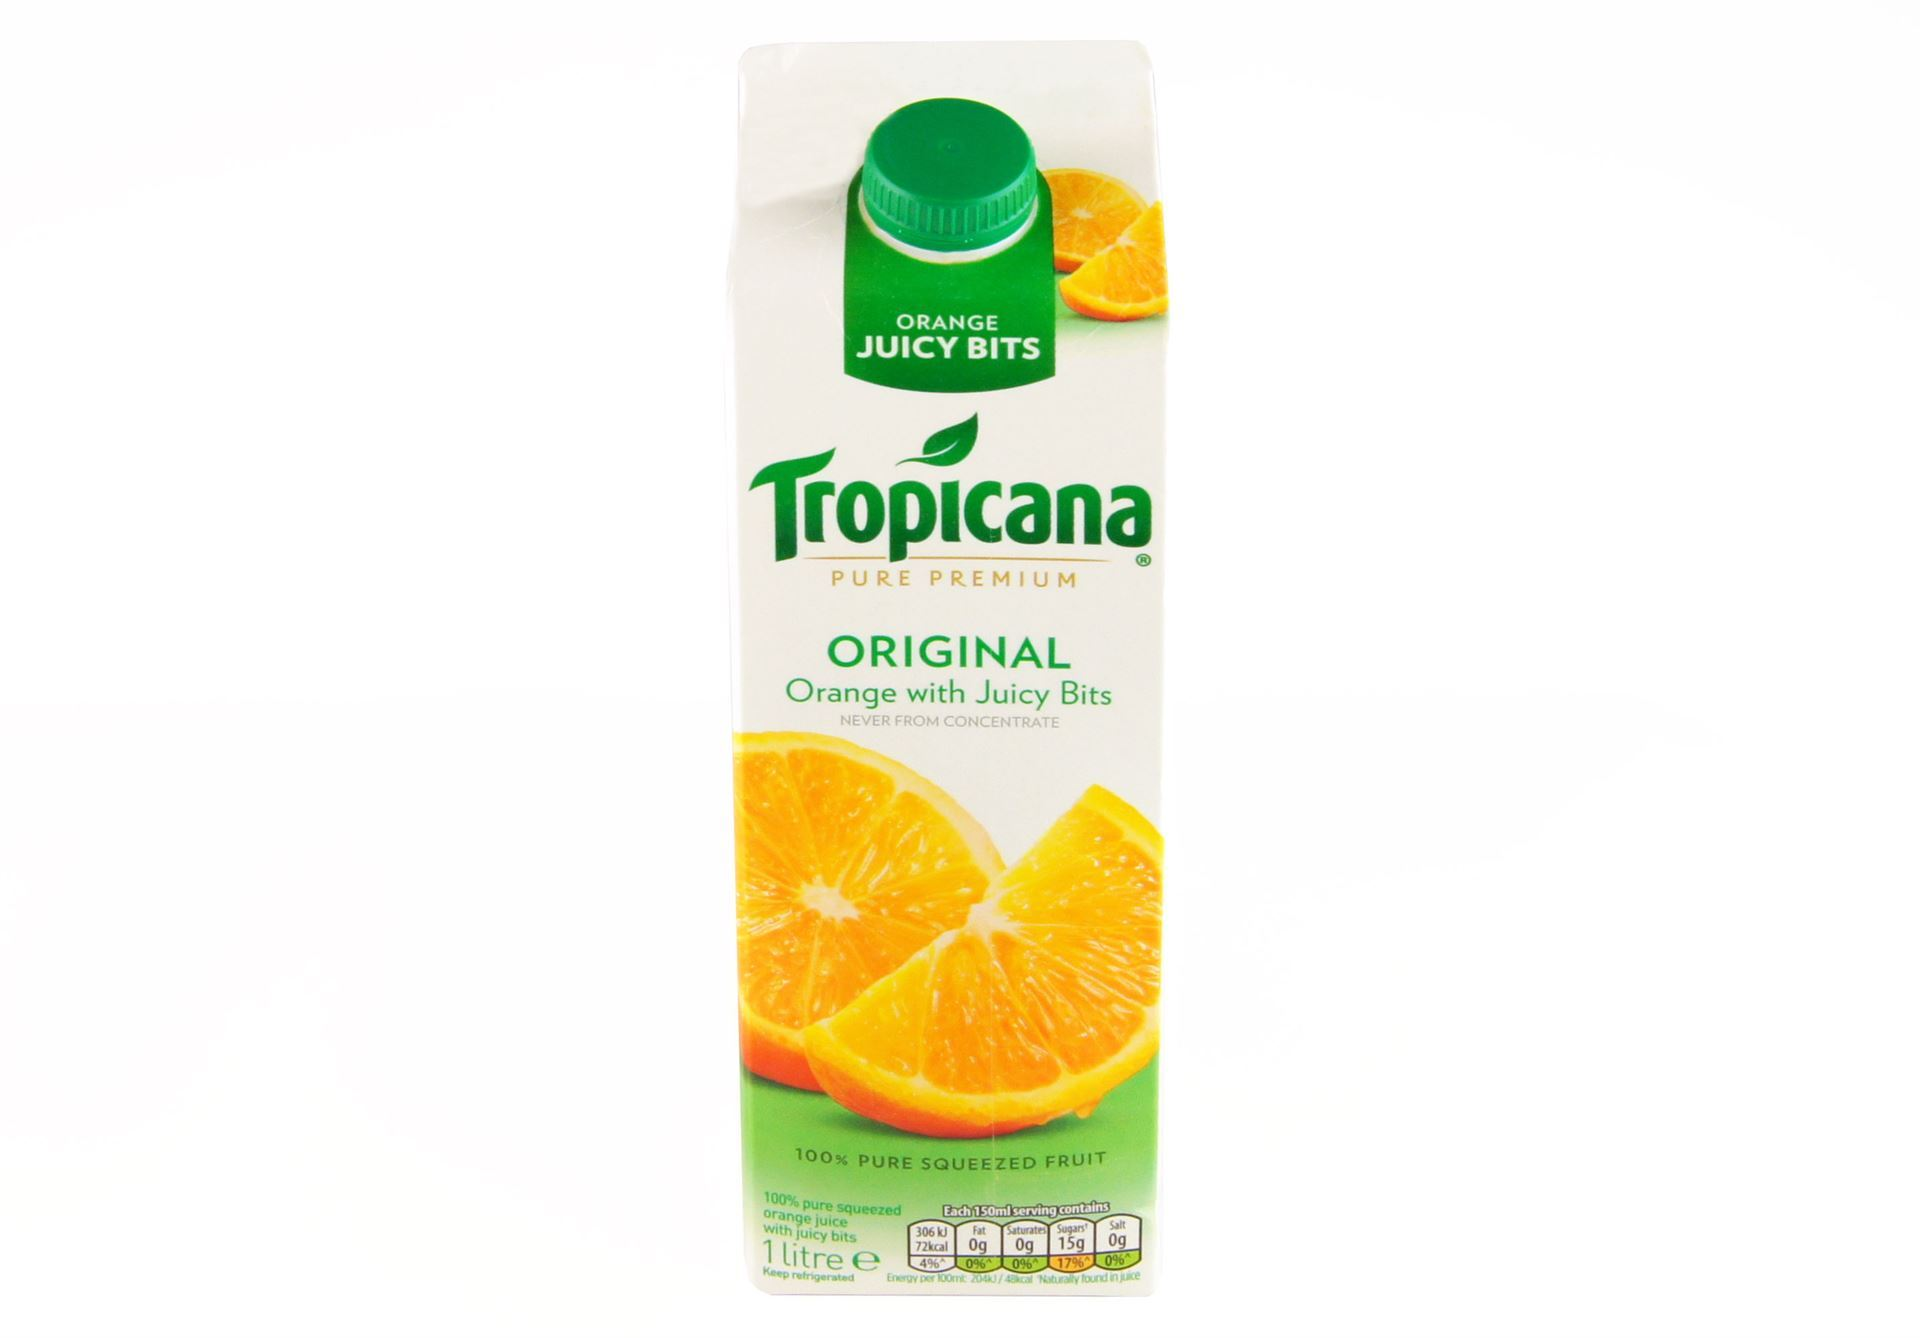 Tropicana orange juice (1 litre)